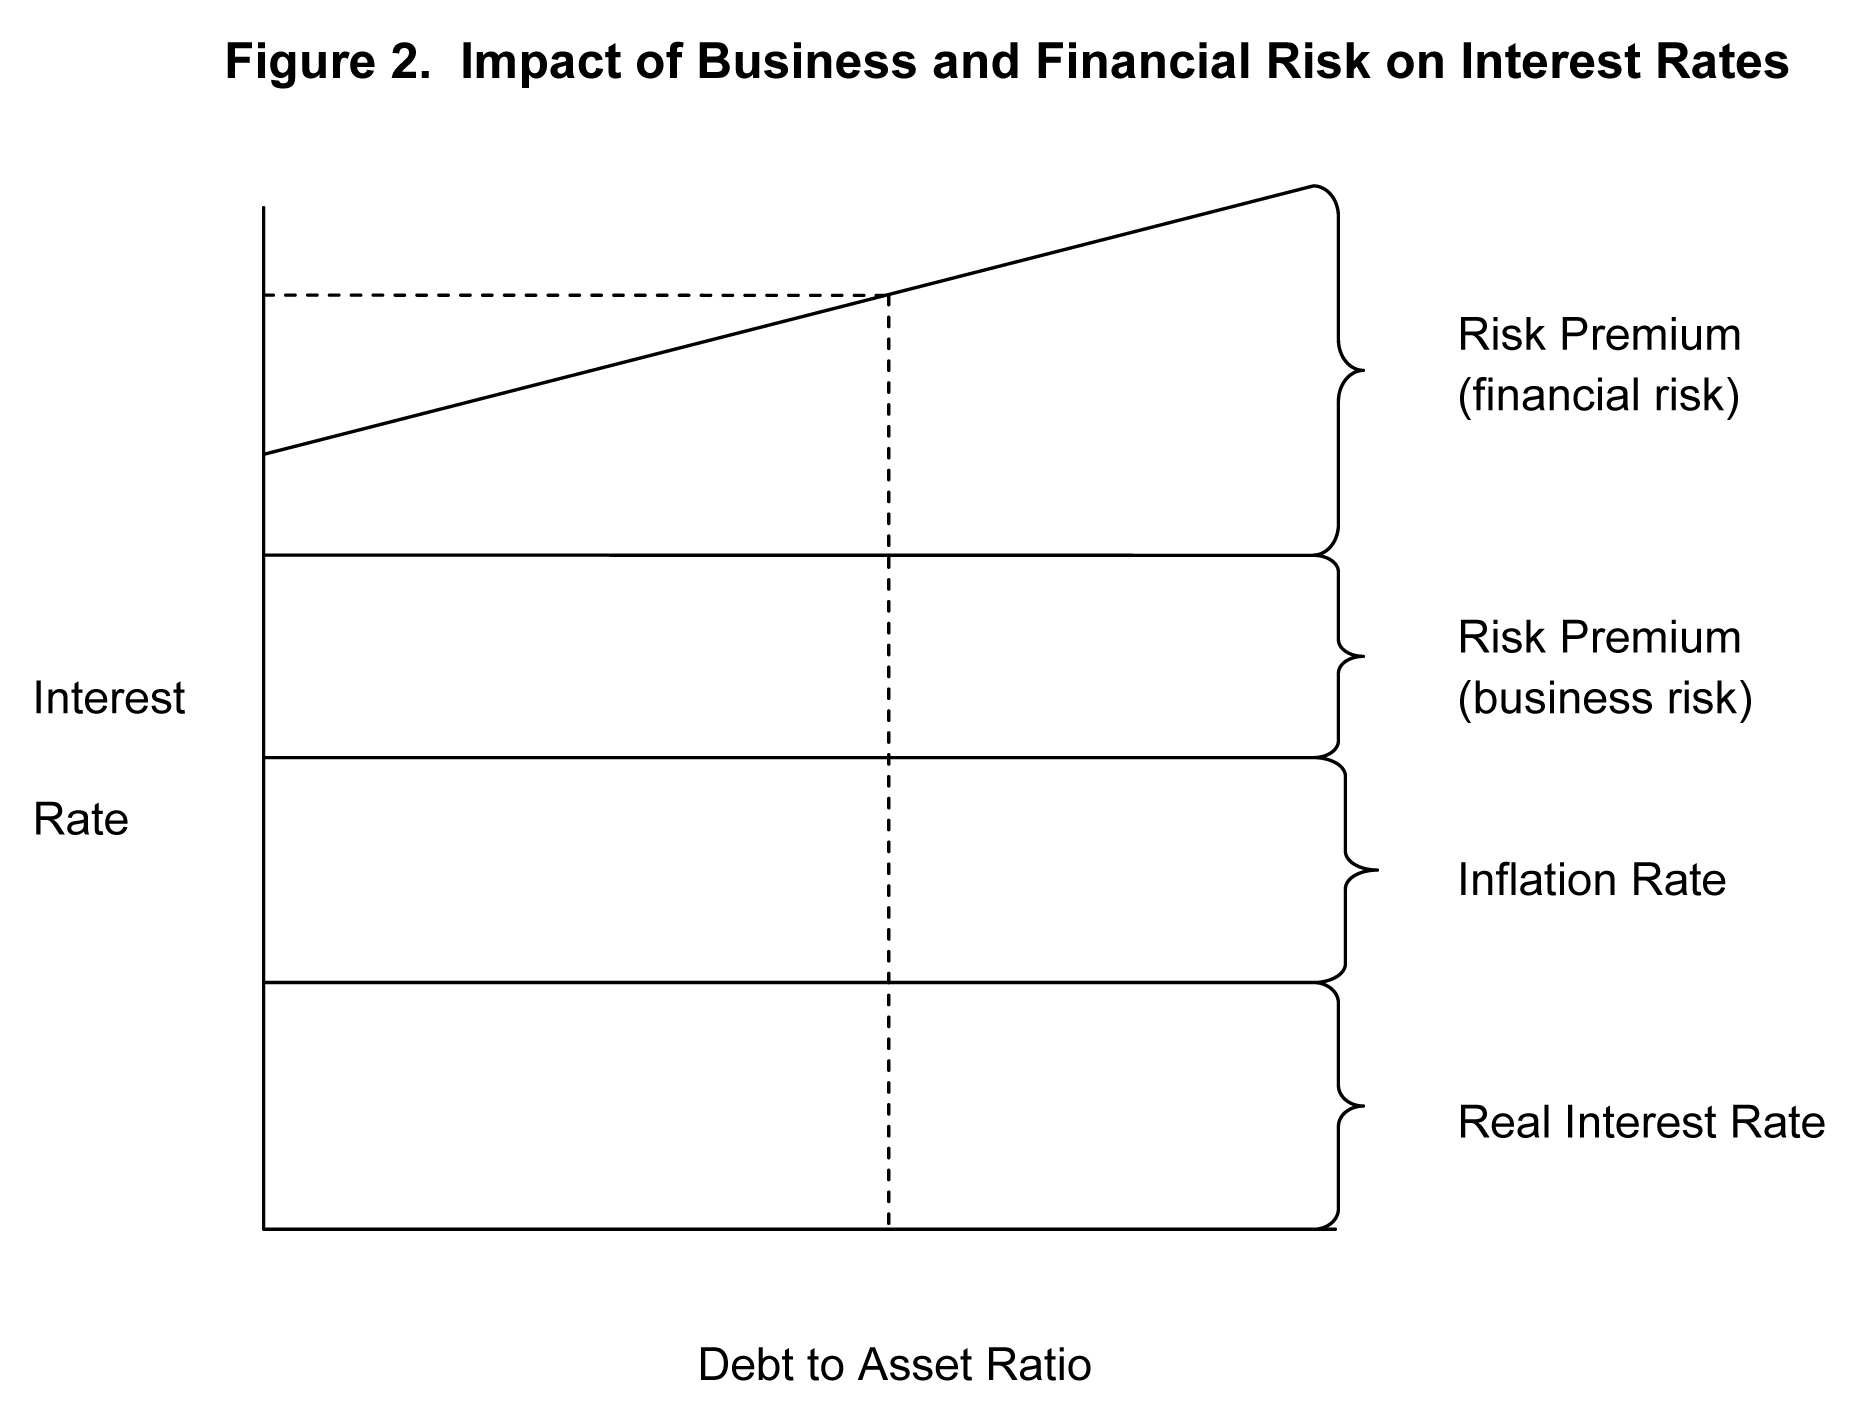 Impact of business and financial risk on interest rates